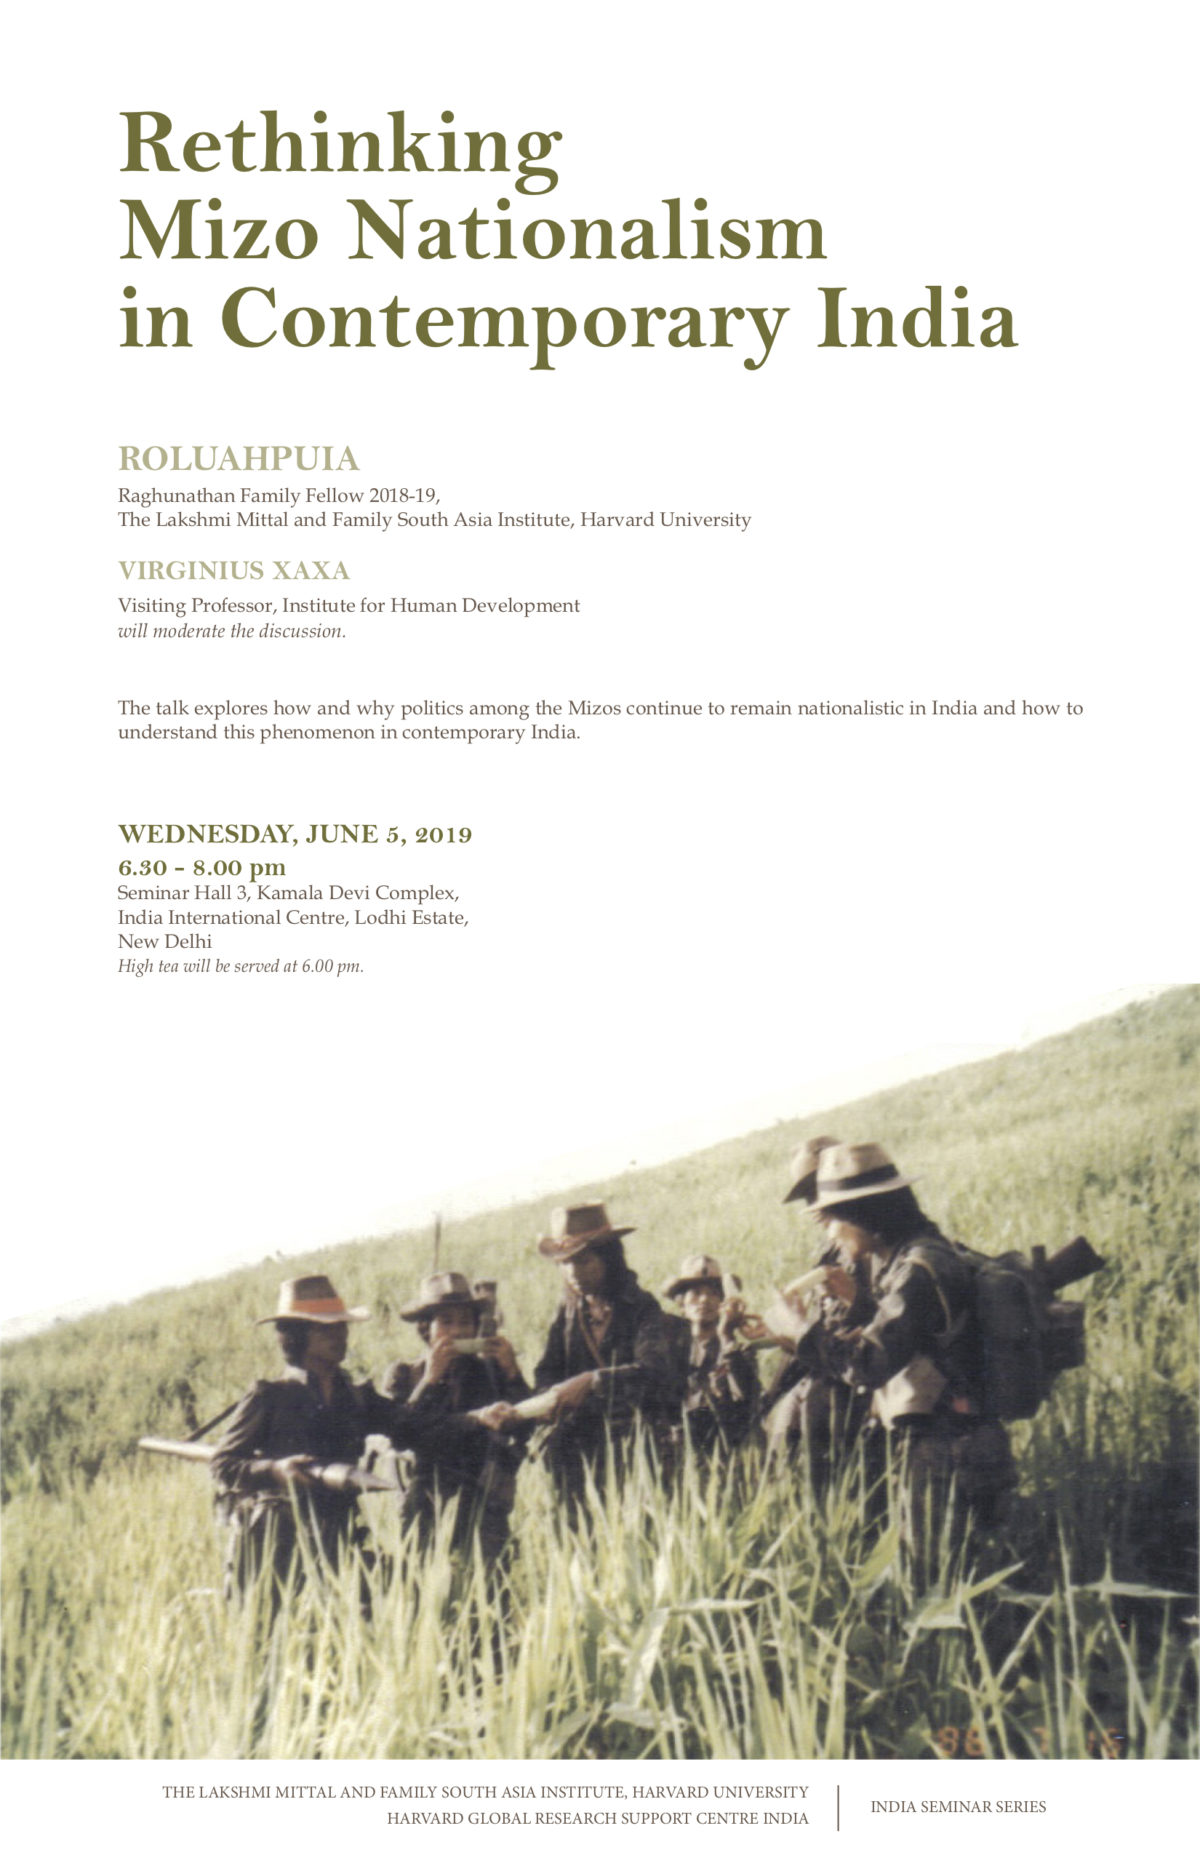 Poster image for Rethinking Mizo Nationalism in Contemporary India event.